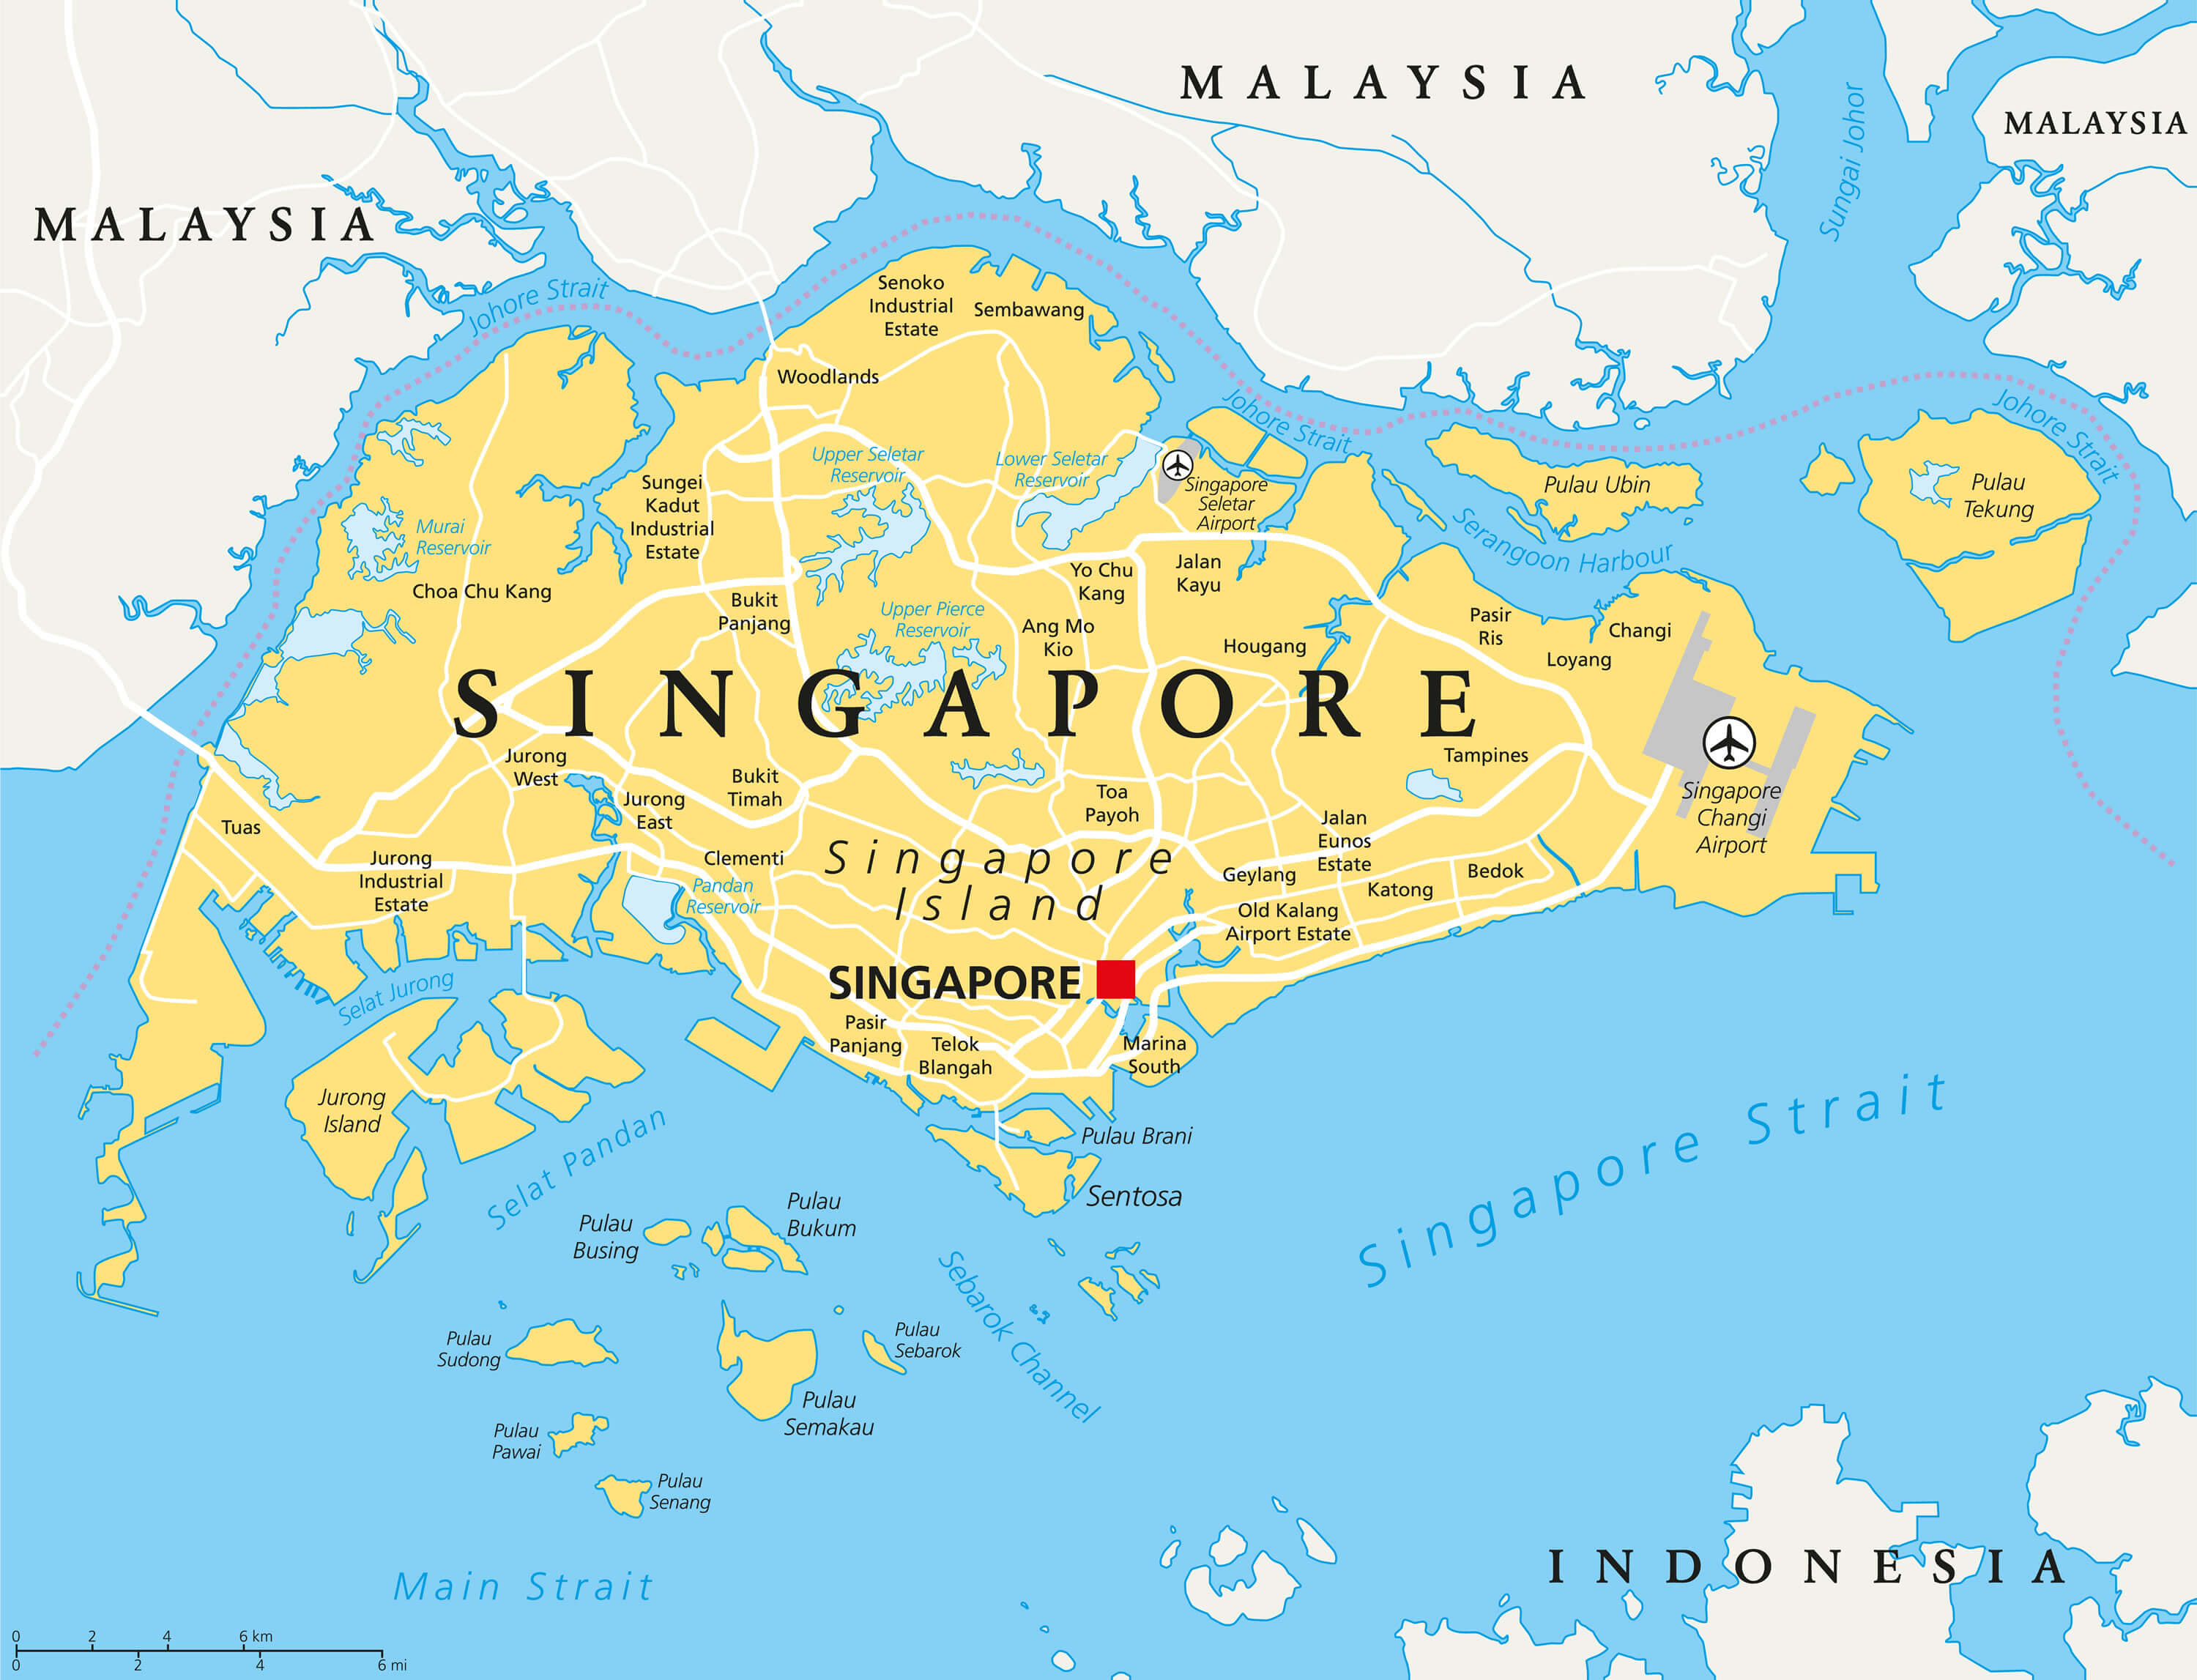 Singapore Map - Guide of the World on southeast asia, brazil map, africa map, kuala lumpur, united states map, japan map, southeast pacific map, europe map, cyprus map, philippines map, chongqing map, singapore airlines, british columbia map, vatican map, singapore dollar, slovenia map, senegal map, mrt map, oceania map, taiwan map, qatar map, hong kong, ho chi minh city, hong kong map, asia map, china map,